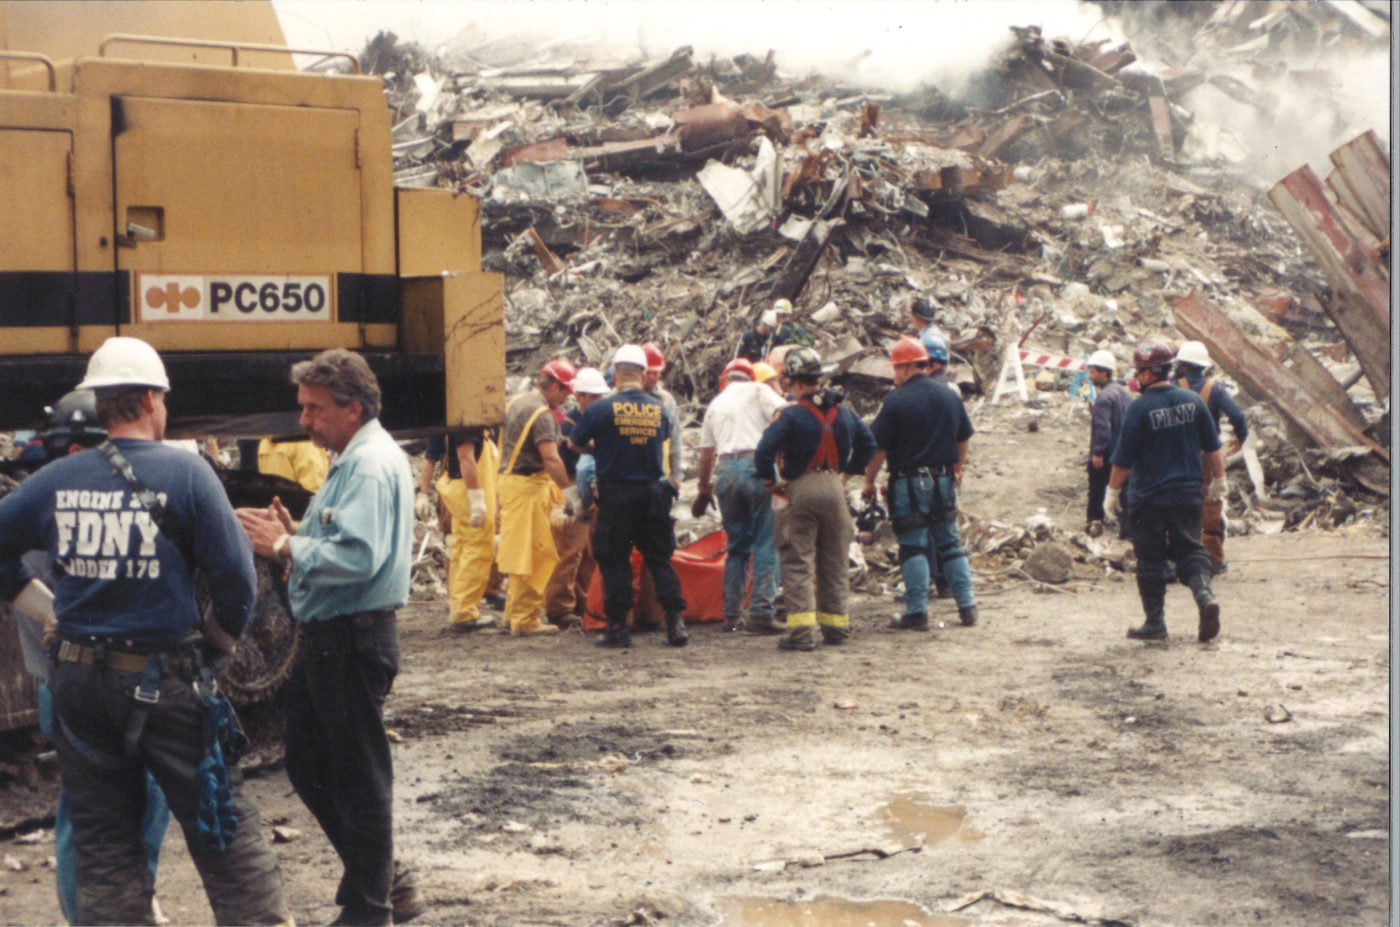 Workers, Police and Fireman Assesing the Debris